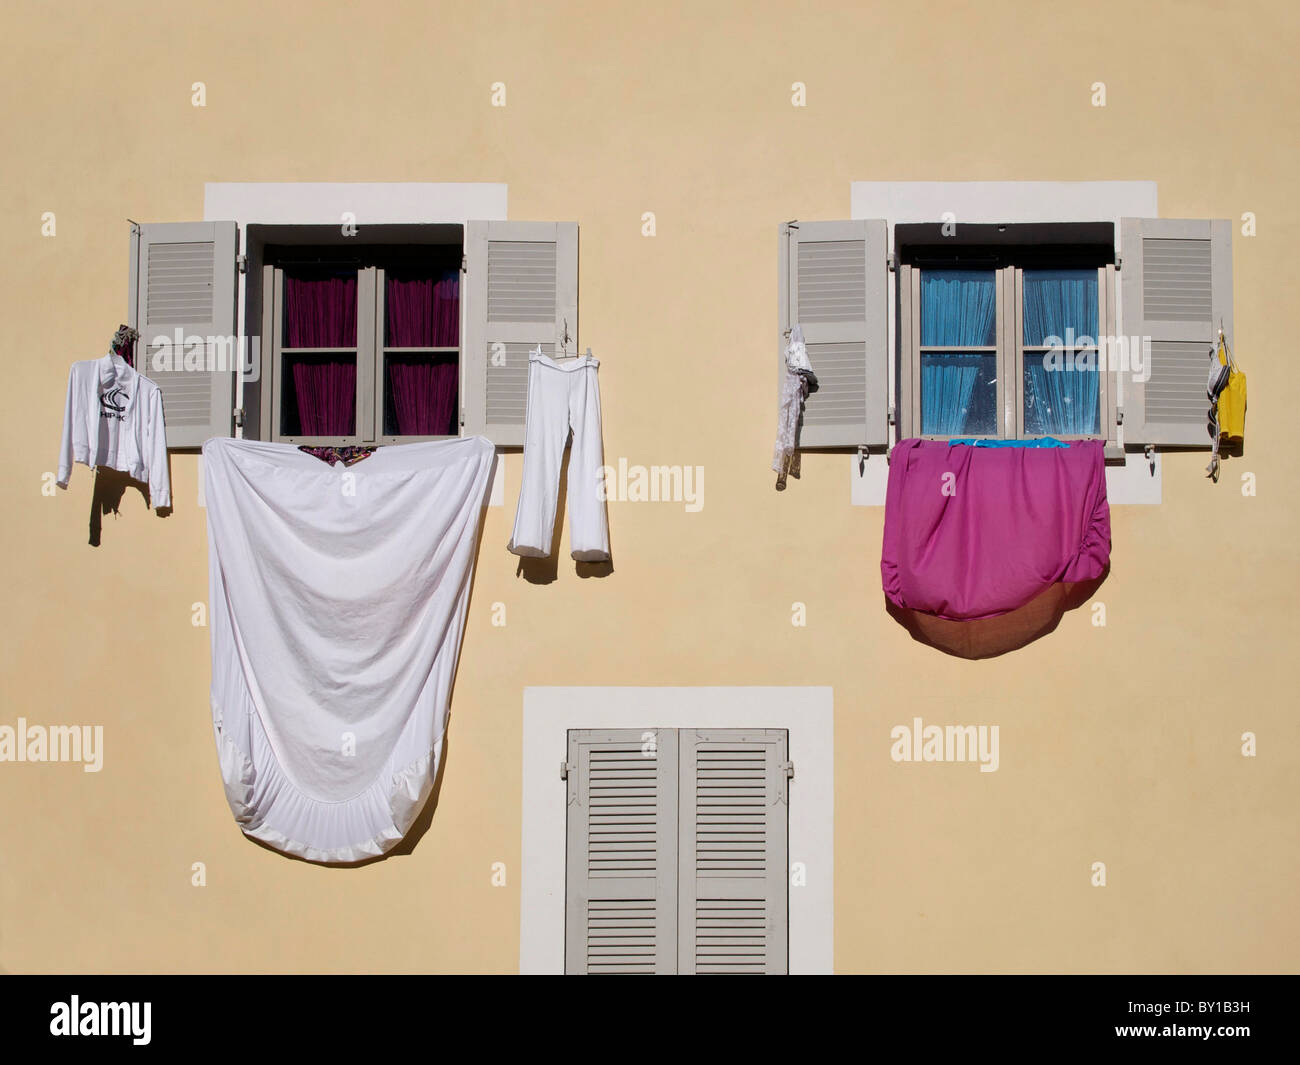 Bed sheets and clothes drying hanging from the windows of a house in a street in southern France - Stock Image